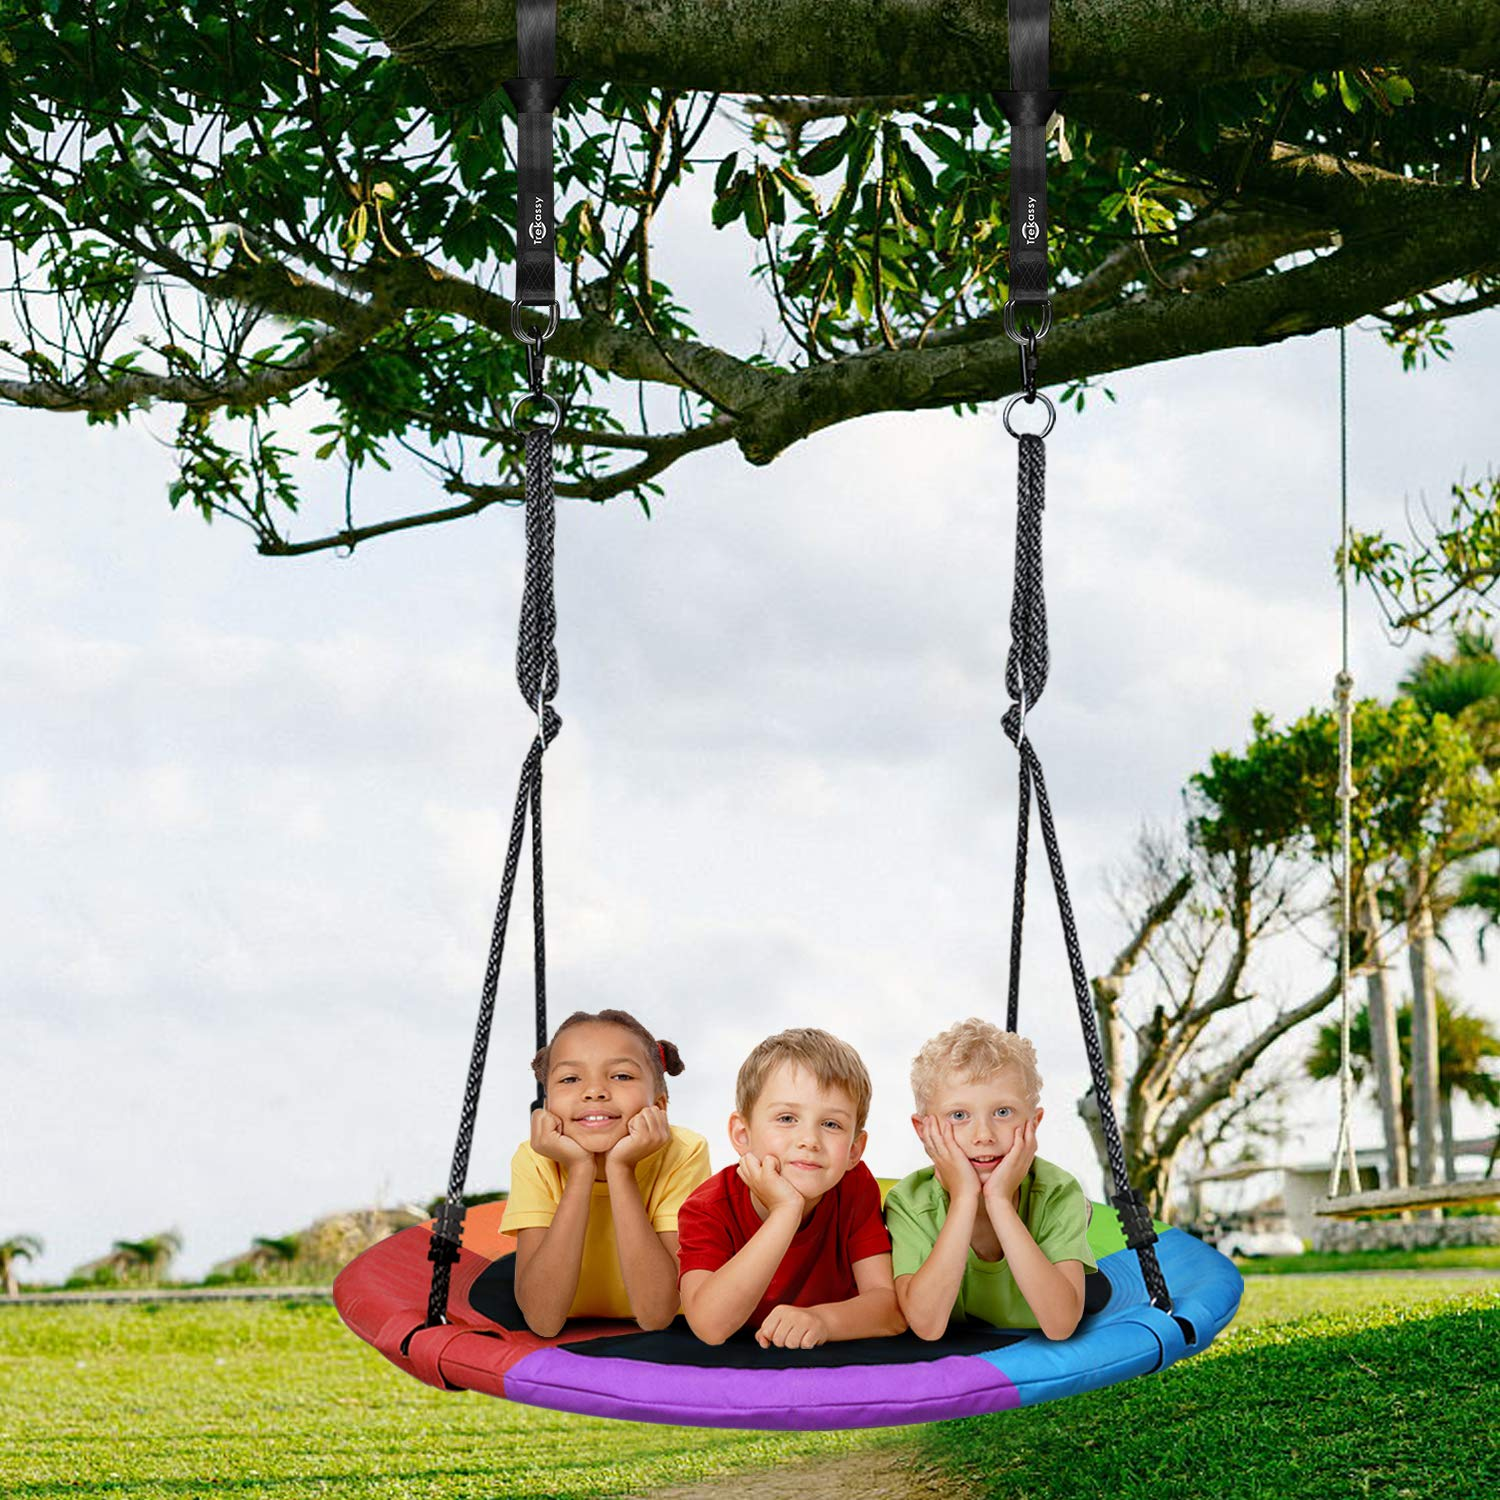 Trekassy 700 lb Saucer Tree Swing for Kids Adults 40 Inch 900D Oxford Waterproof Frame with 2 Hanging Straps - Rainbow by Trekassy (Image #7)